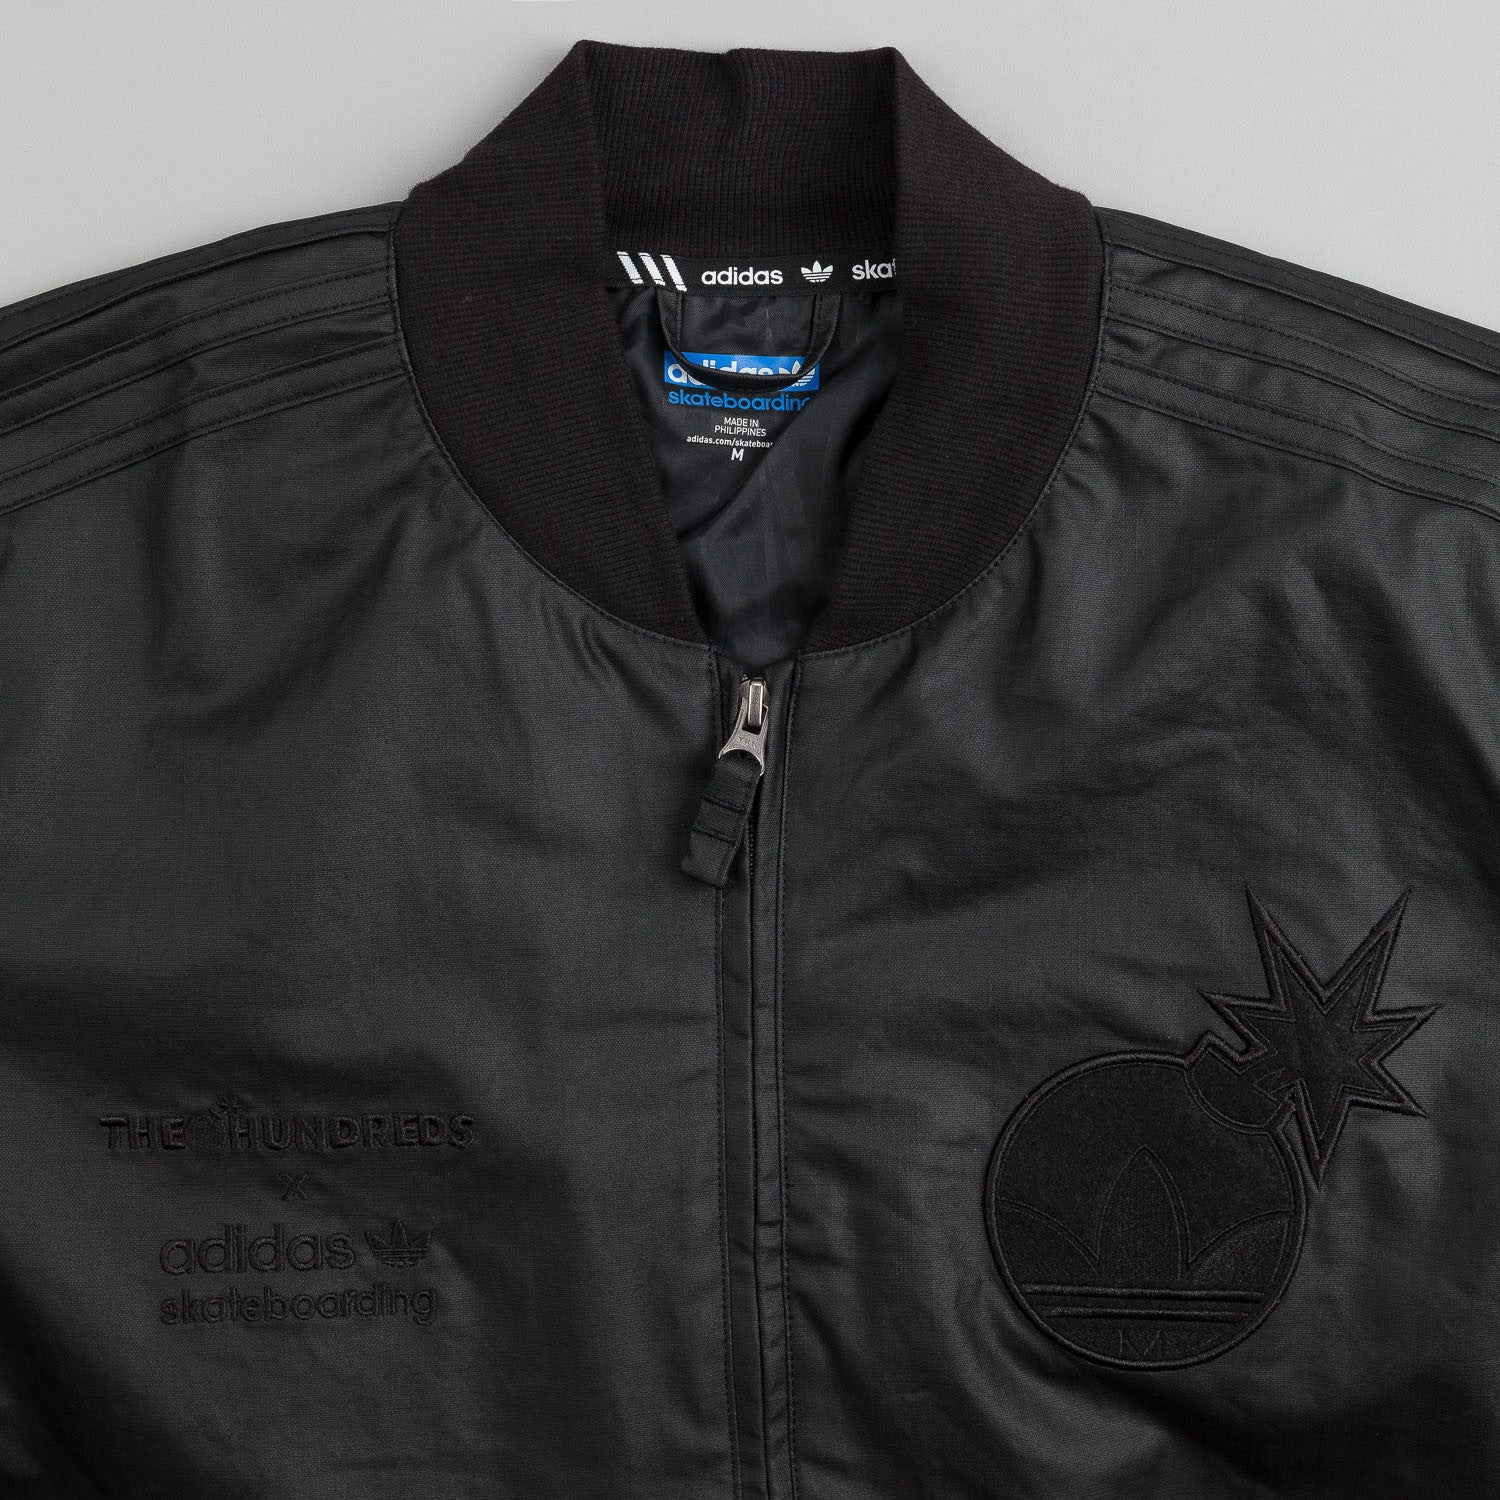 Adidas X The Hundreds Waxed Track Jacket - Black